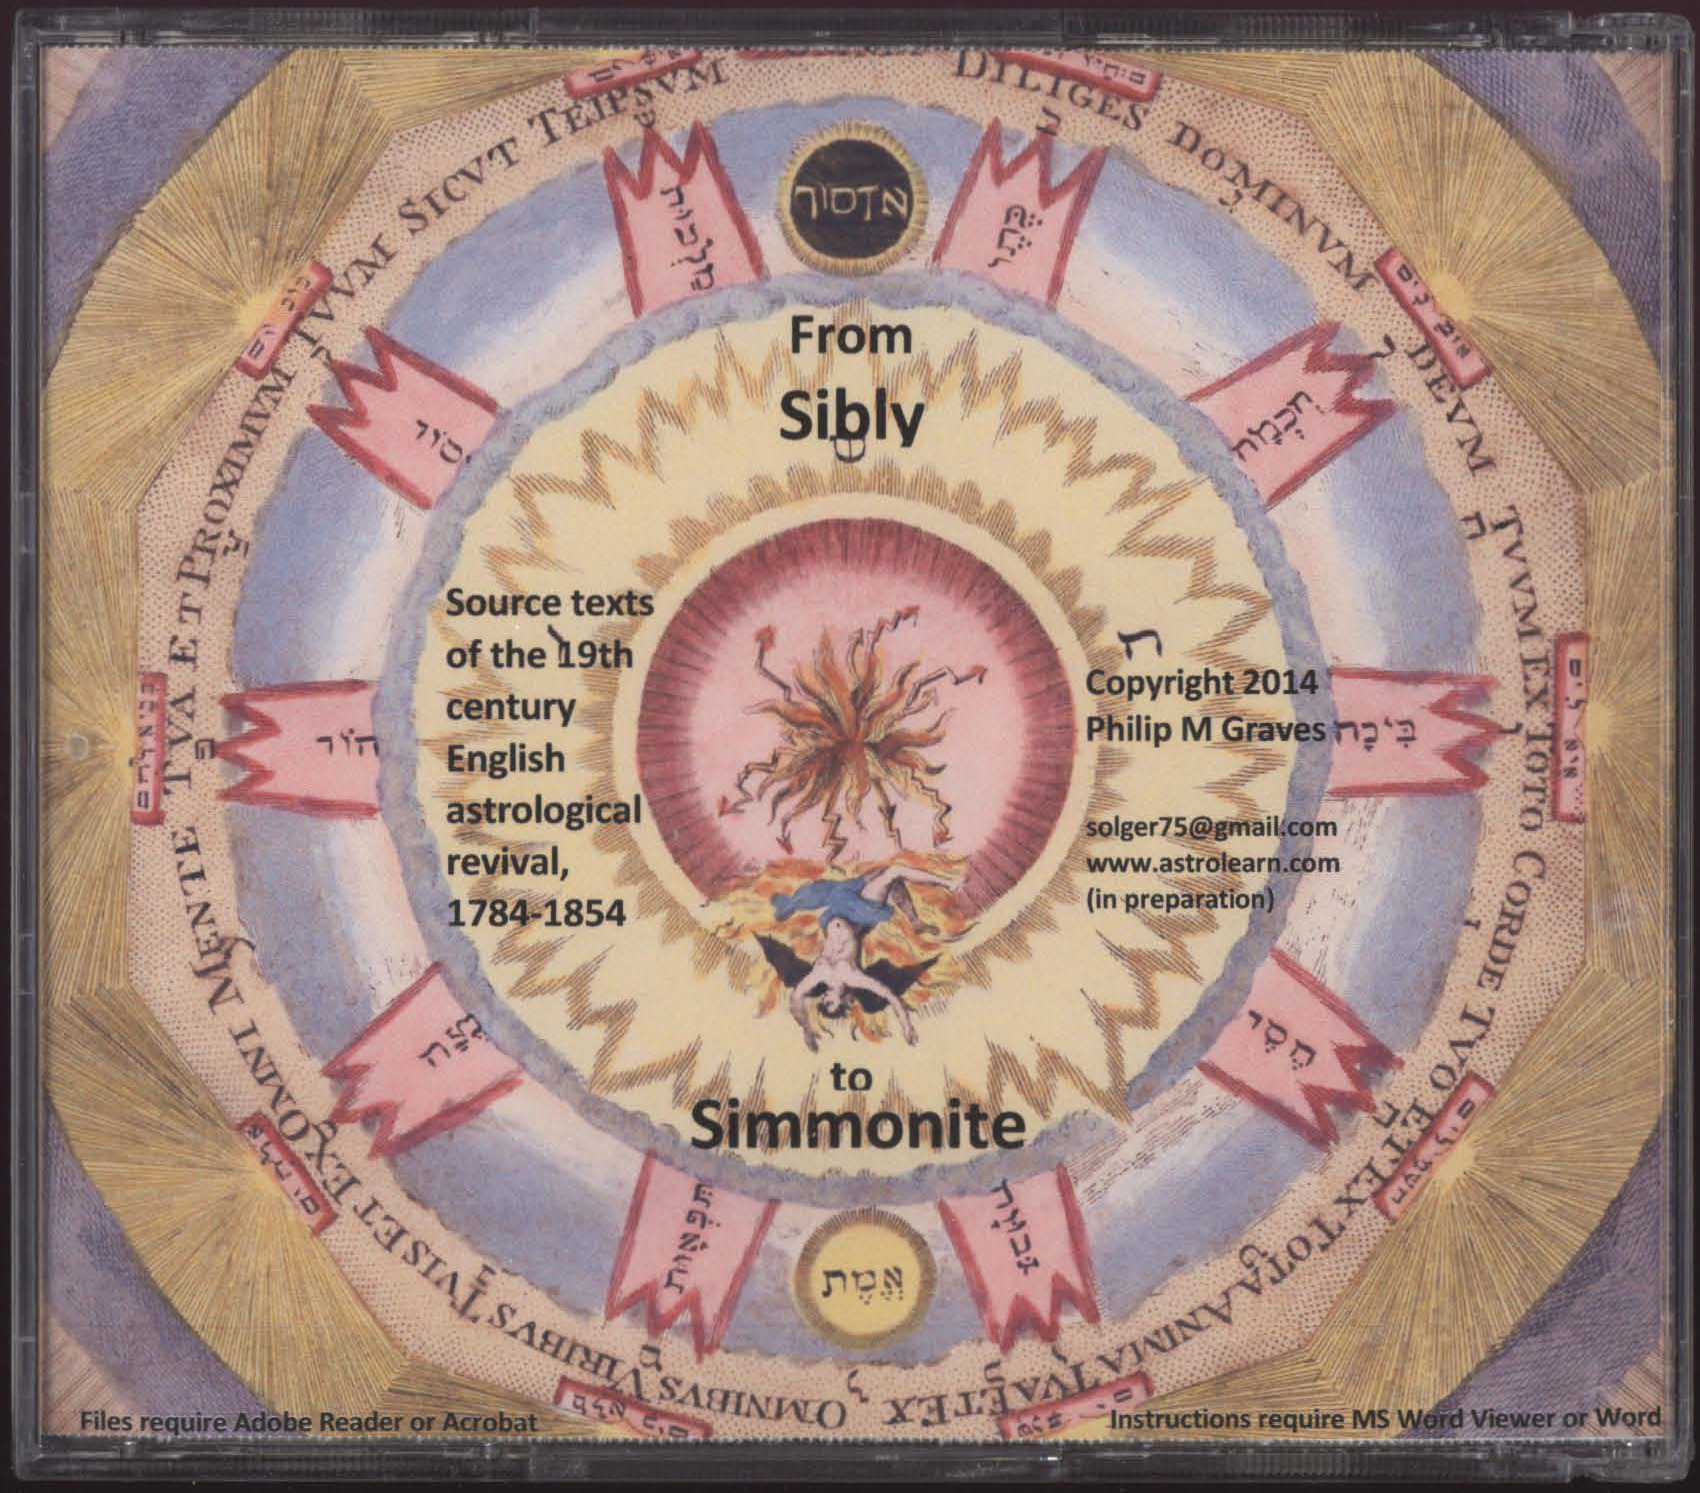 From Sibly to Simmonite: Source-Texts of the 19th Century English Astrological Revival, 1784-1854, Rear Cover